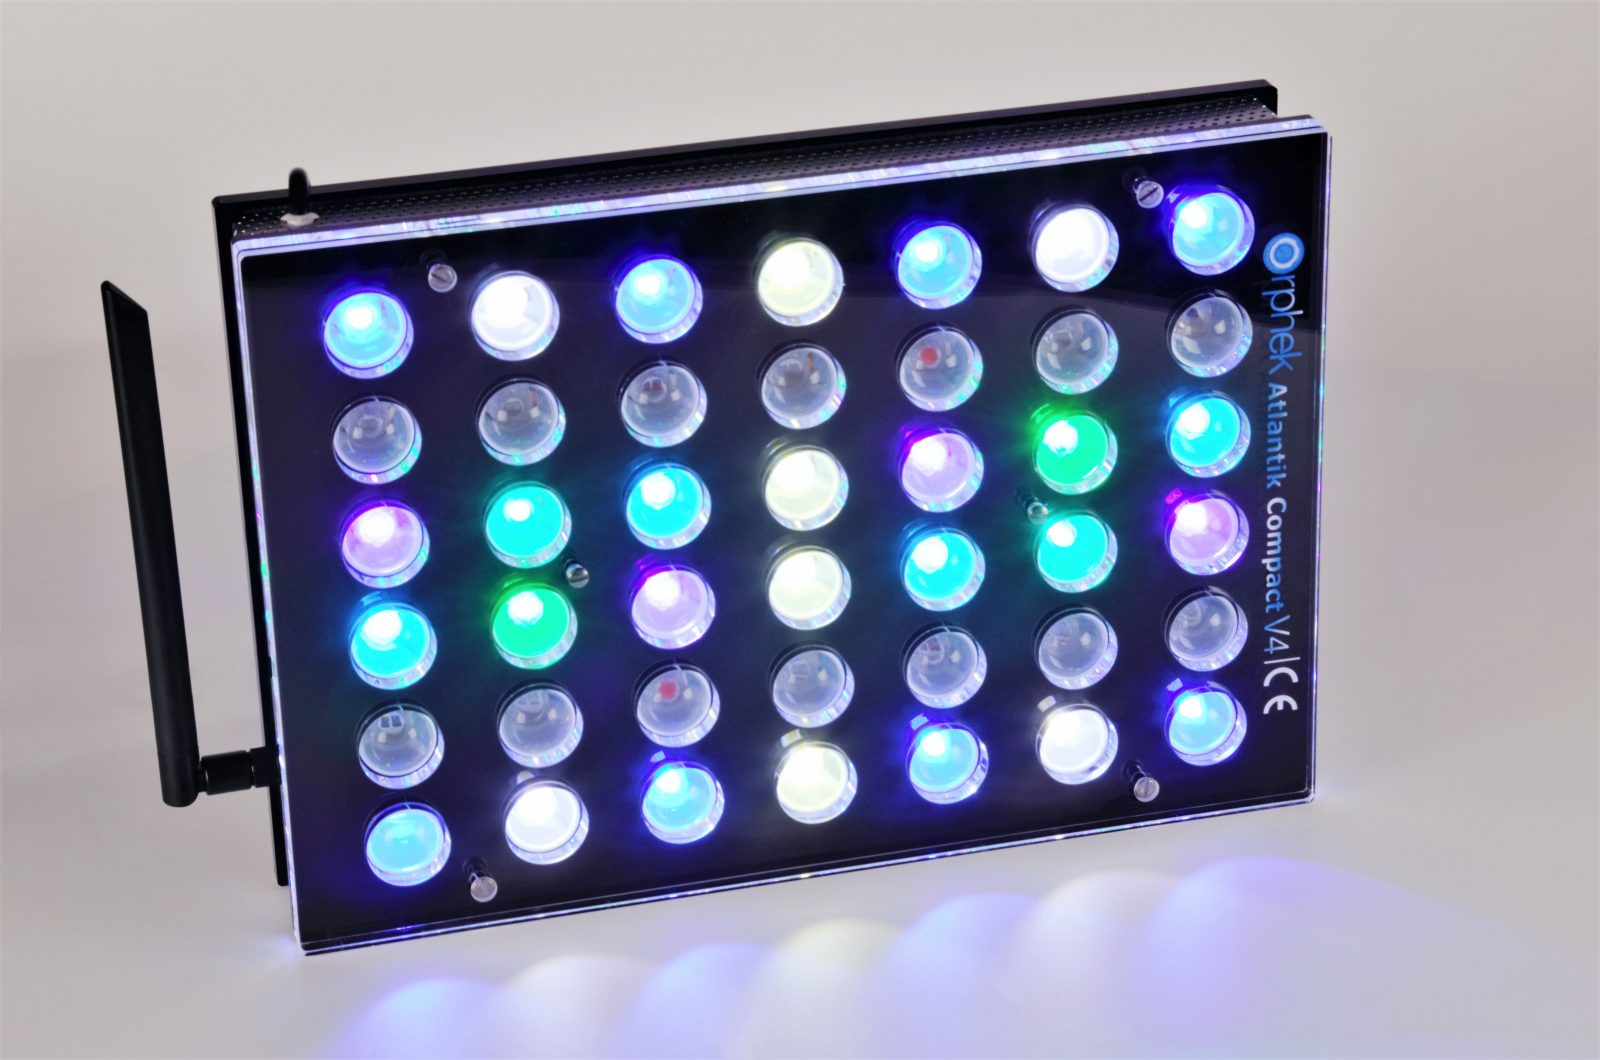 Orphek-Aquarium-LED-Lighting-Atlantik -Compact-V4-licht -on-kanaal 1 + 2